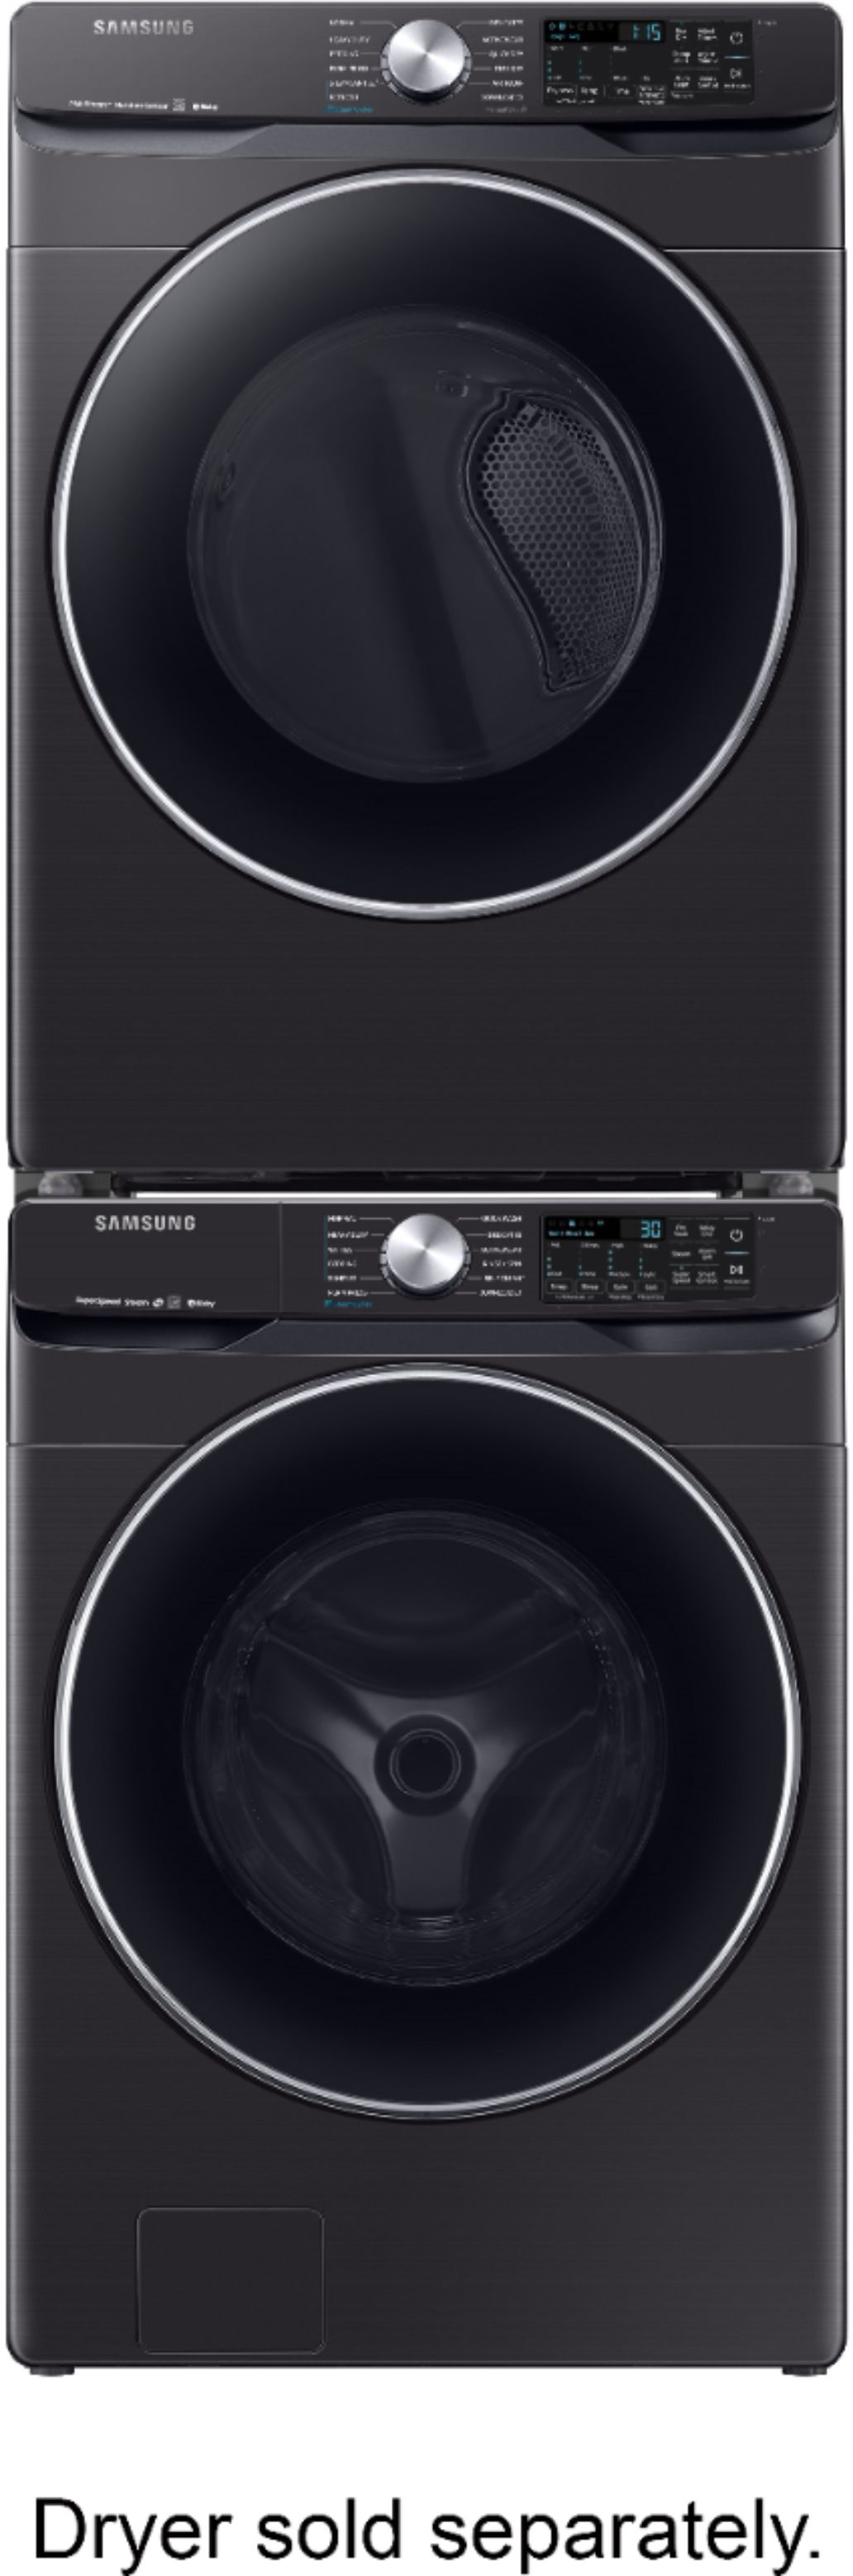 Samsung 4 5 Cu Ft 12 Cycle Front Loading Smart Wi Fi Washer With Steam Black Stainless Steel Wf45r6300av Us Best Buy